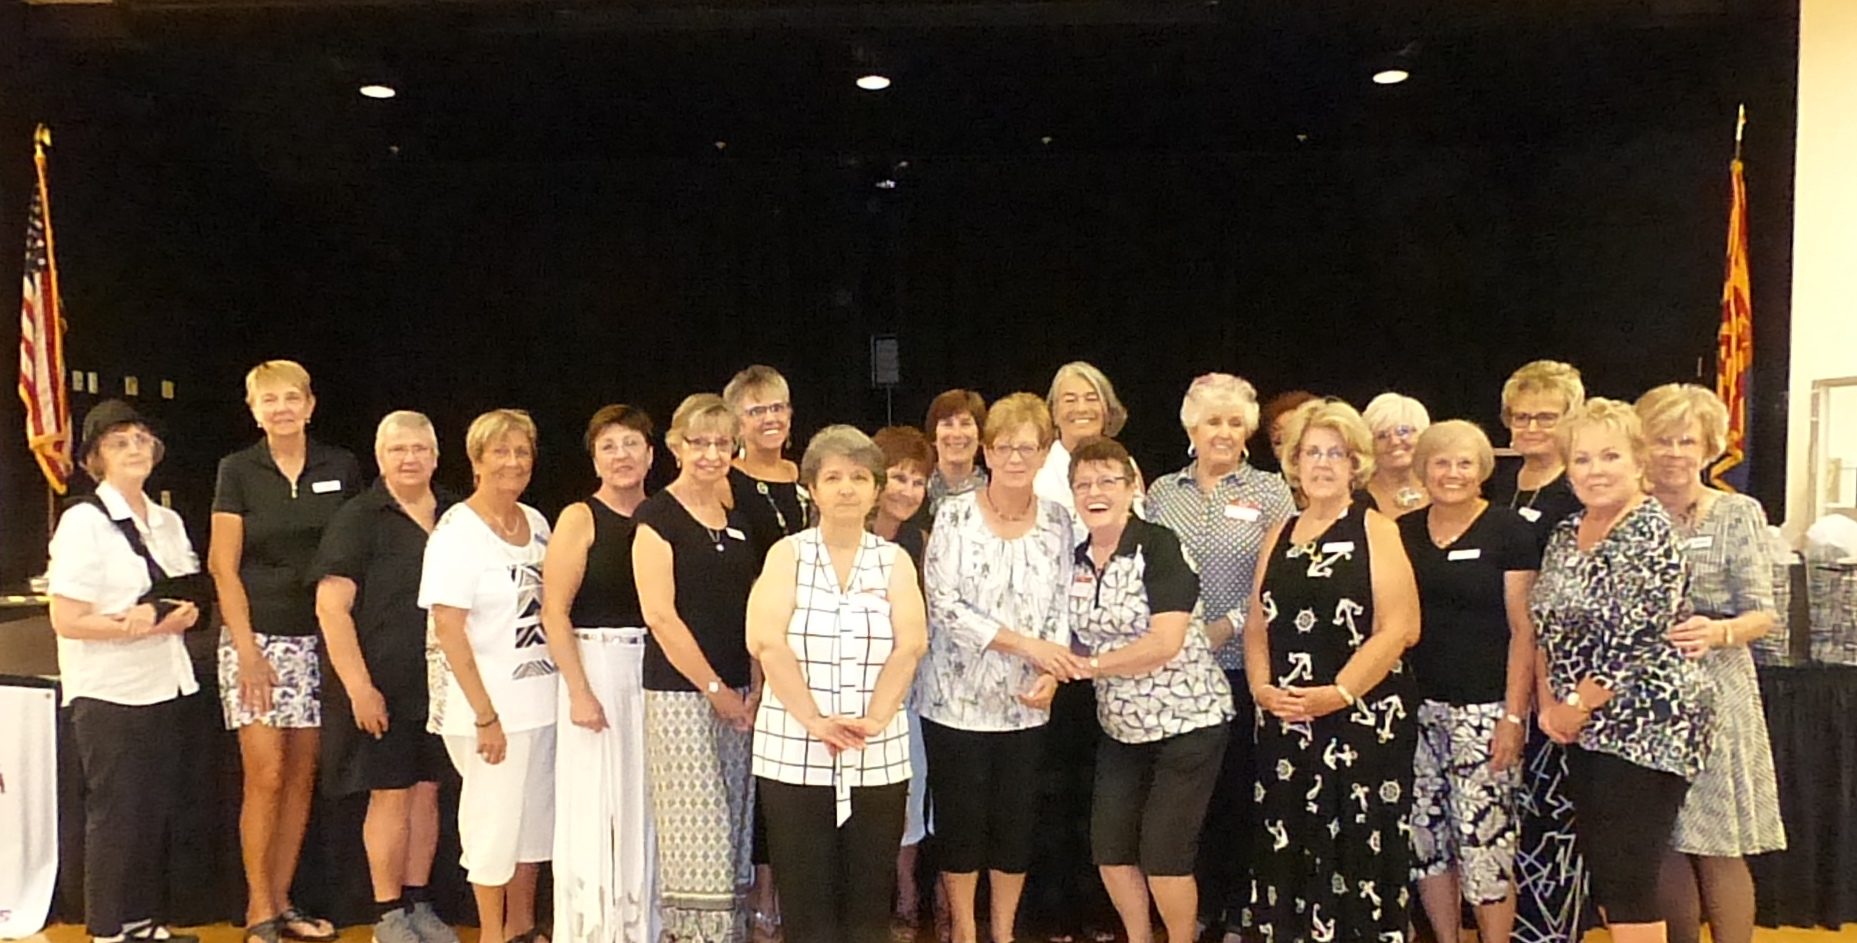 New Members at our Black and White Anniversary General Meeting and Luncheon